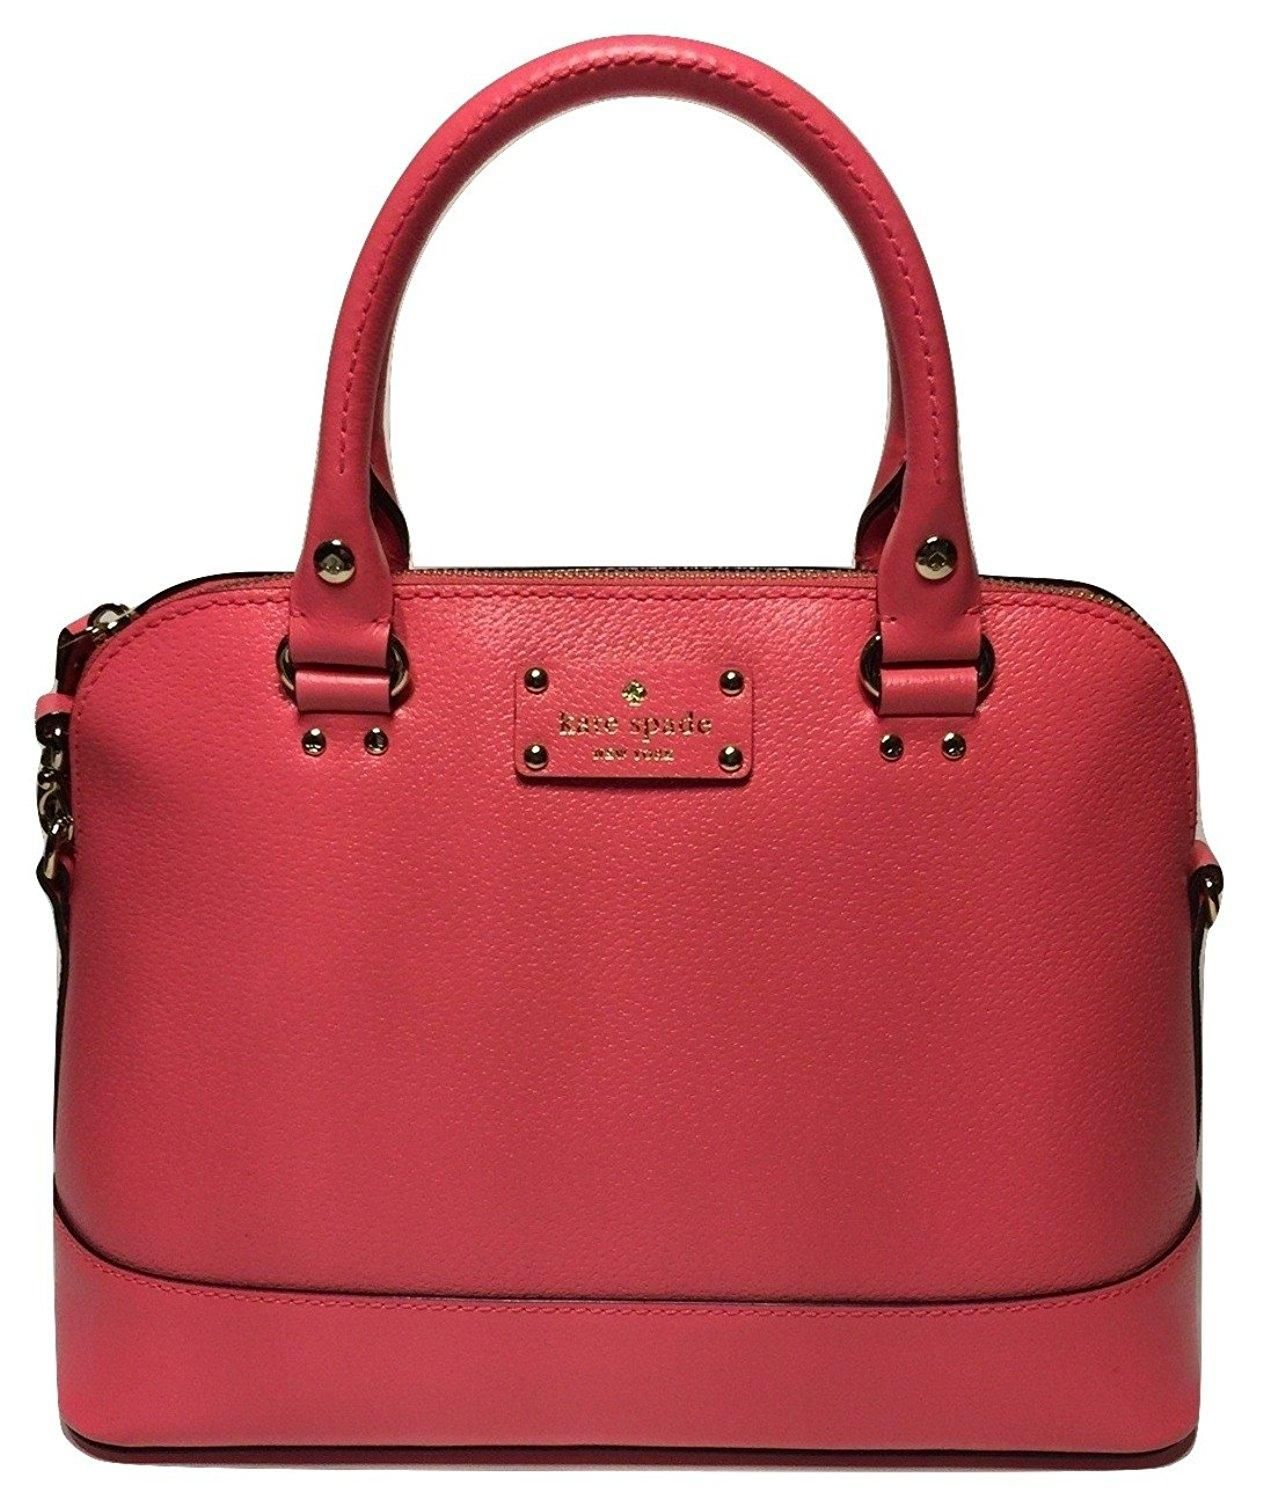 82719b6f46a0d Kate Spade Wellesley Small Rachelle Leather Handbag Wkru2485 (peony)  Shoulder Bag. Get one of the hottest styles of the season! The Kate Spade  Wellesley ...